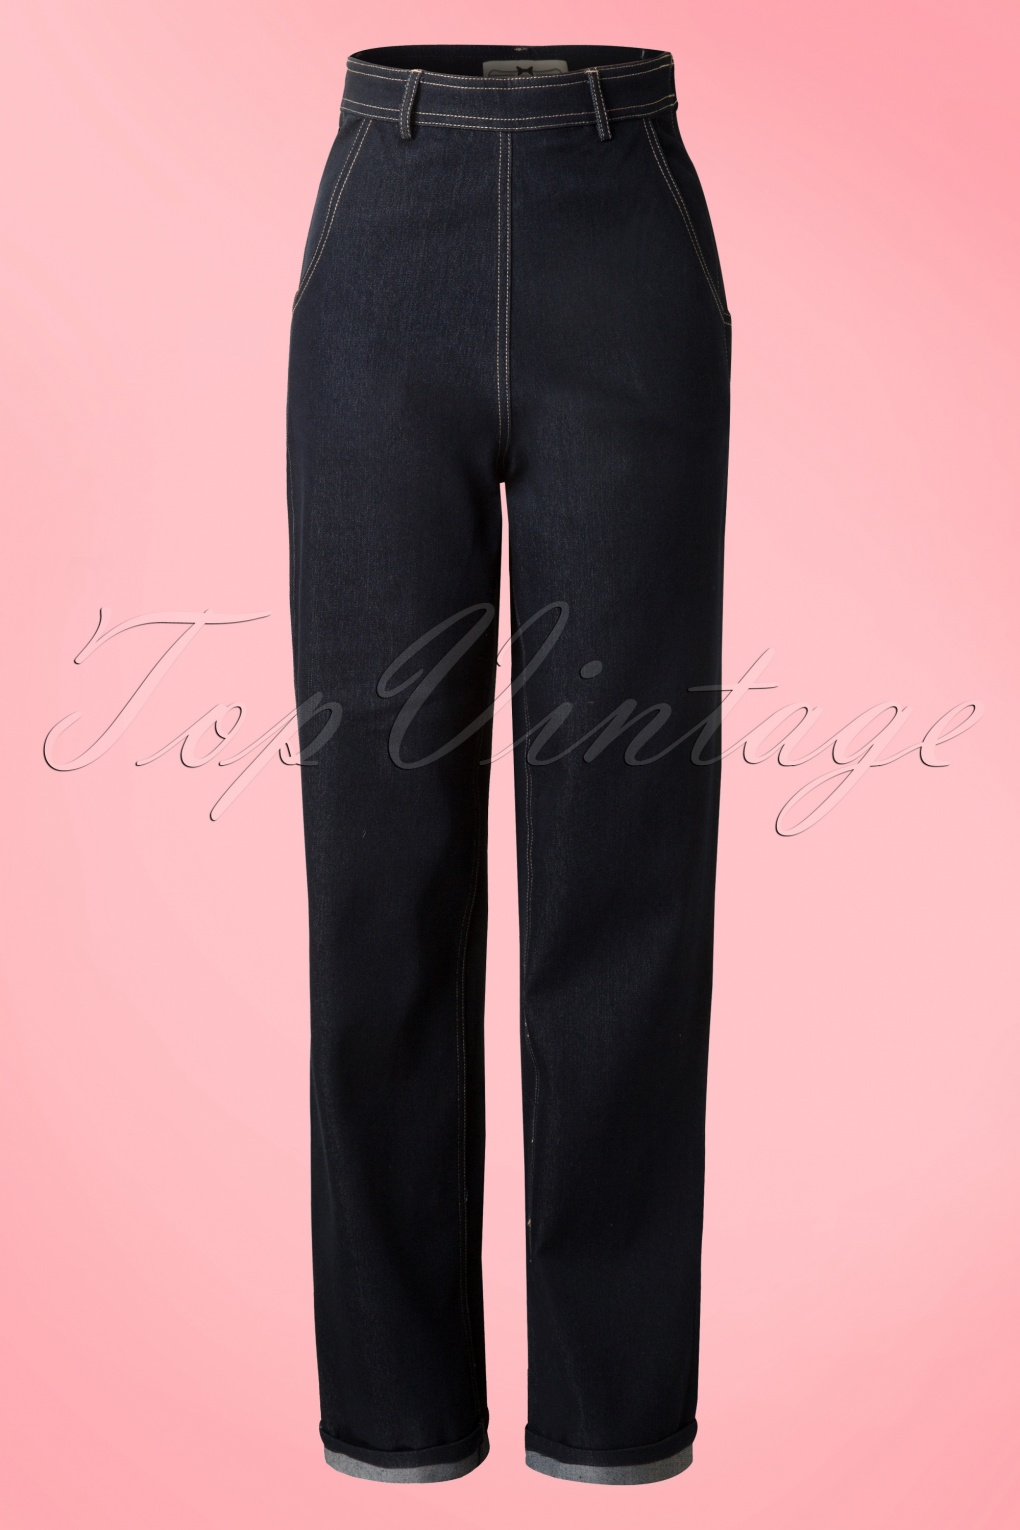 Vintage High Waisted Trousers, Sailor Pants, Jeans 50s Siobhan High Waist Jeans in Navy £50.60 AT vintagedancer.com